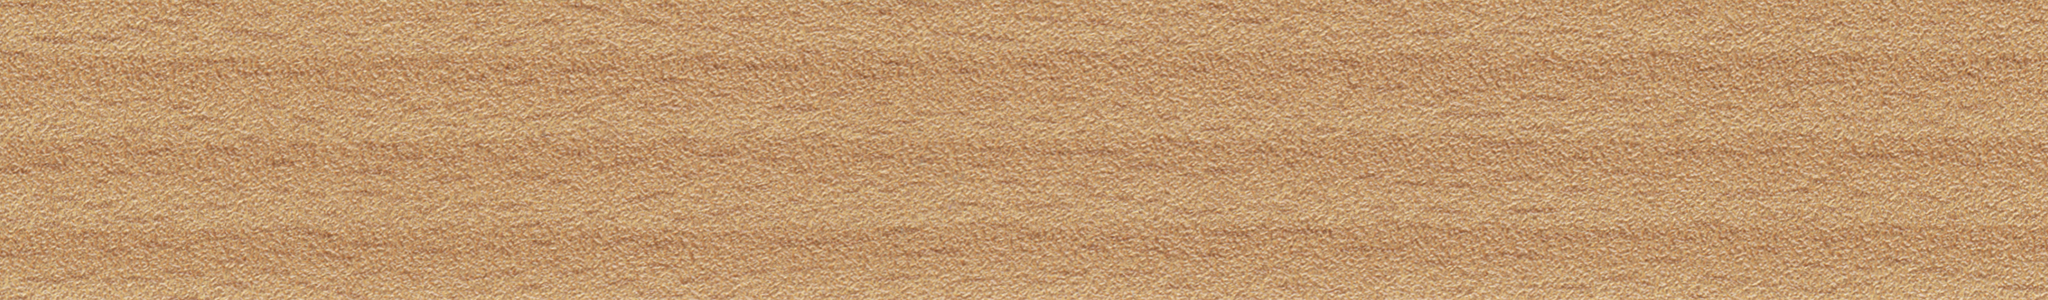 HD 213399 ABS Edge Beech Pearl